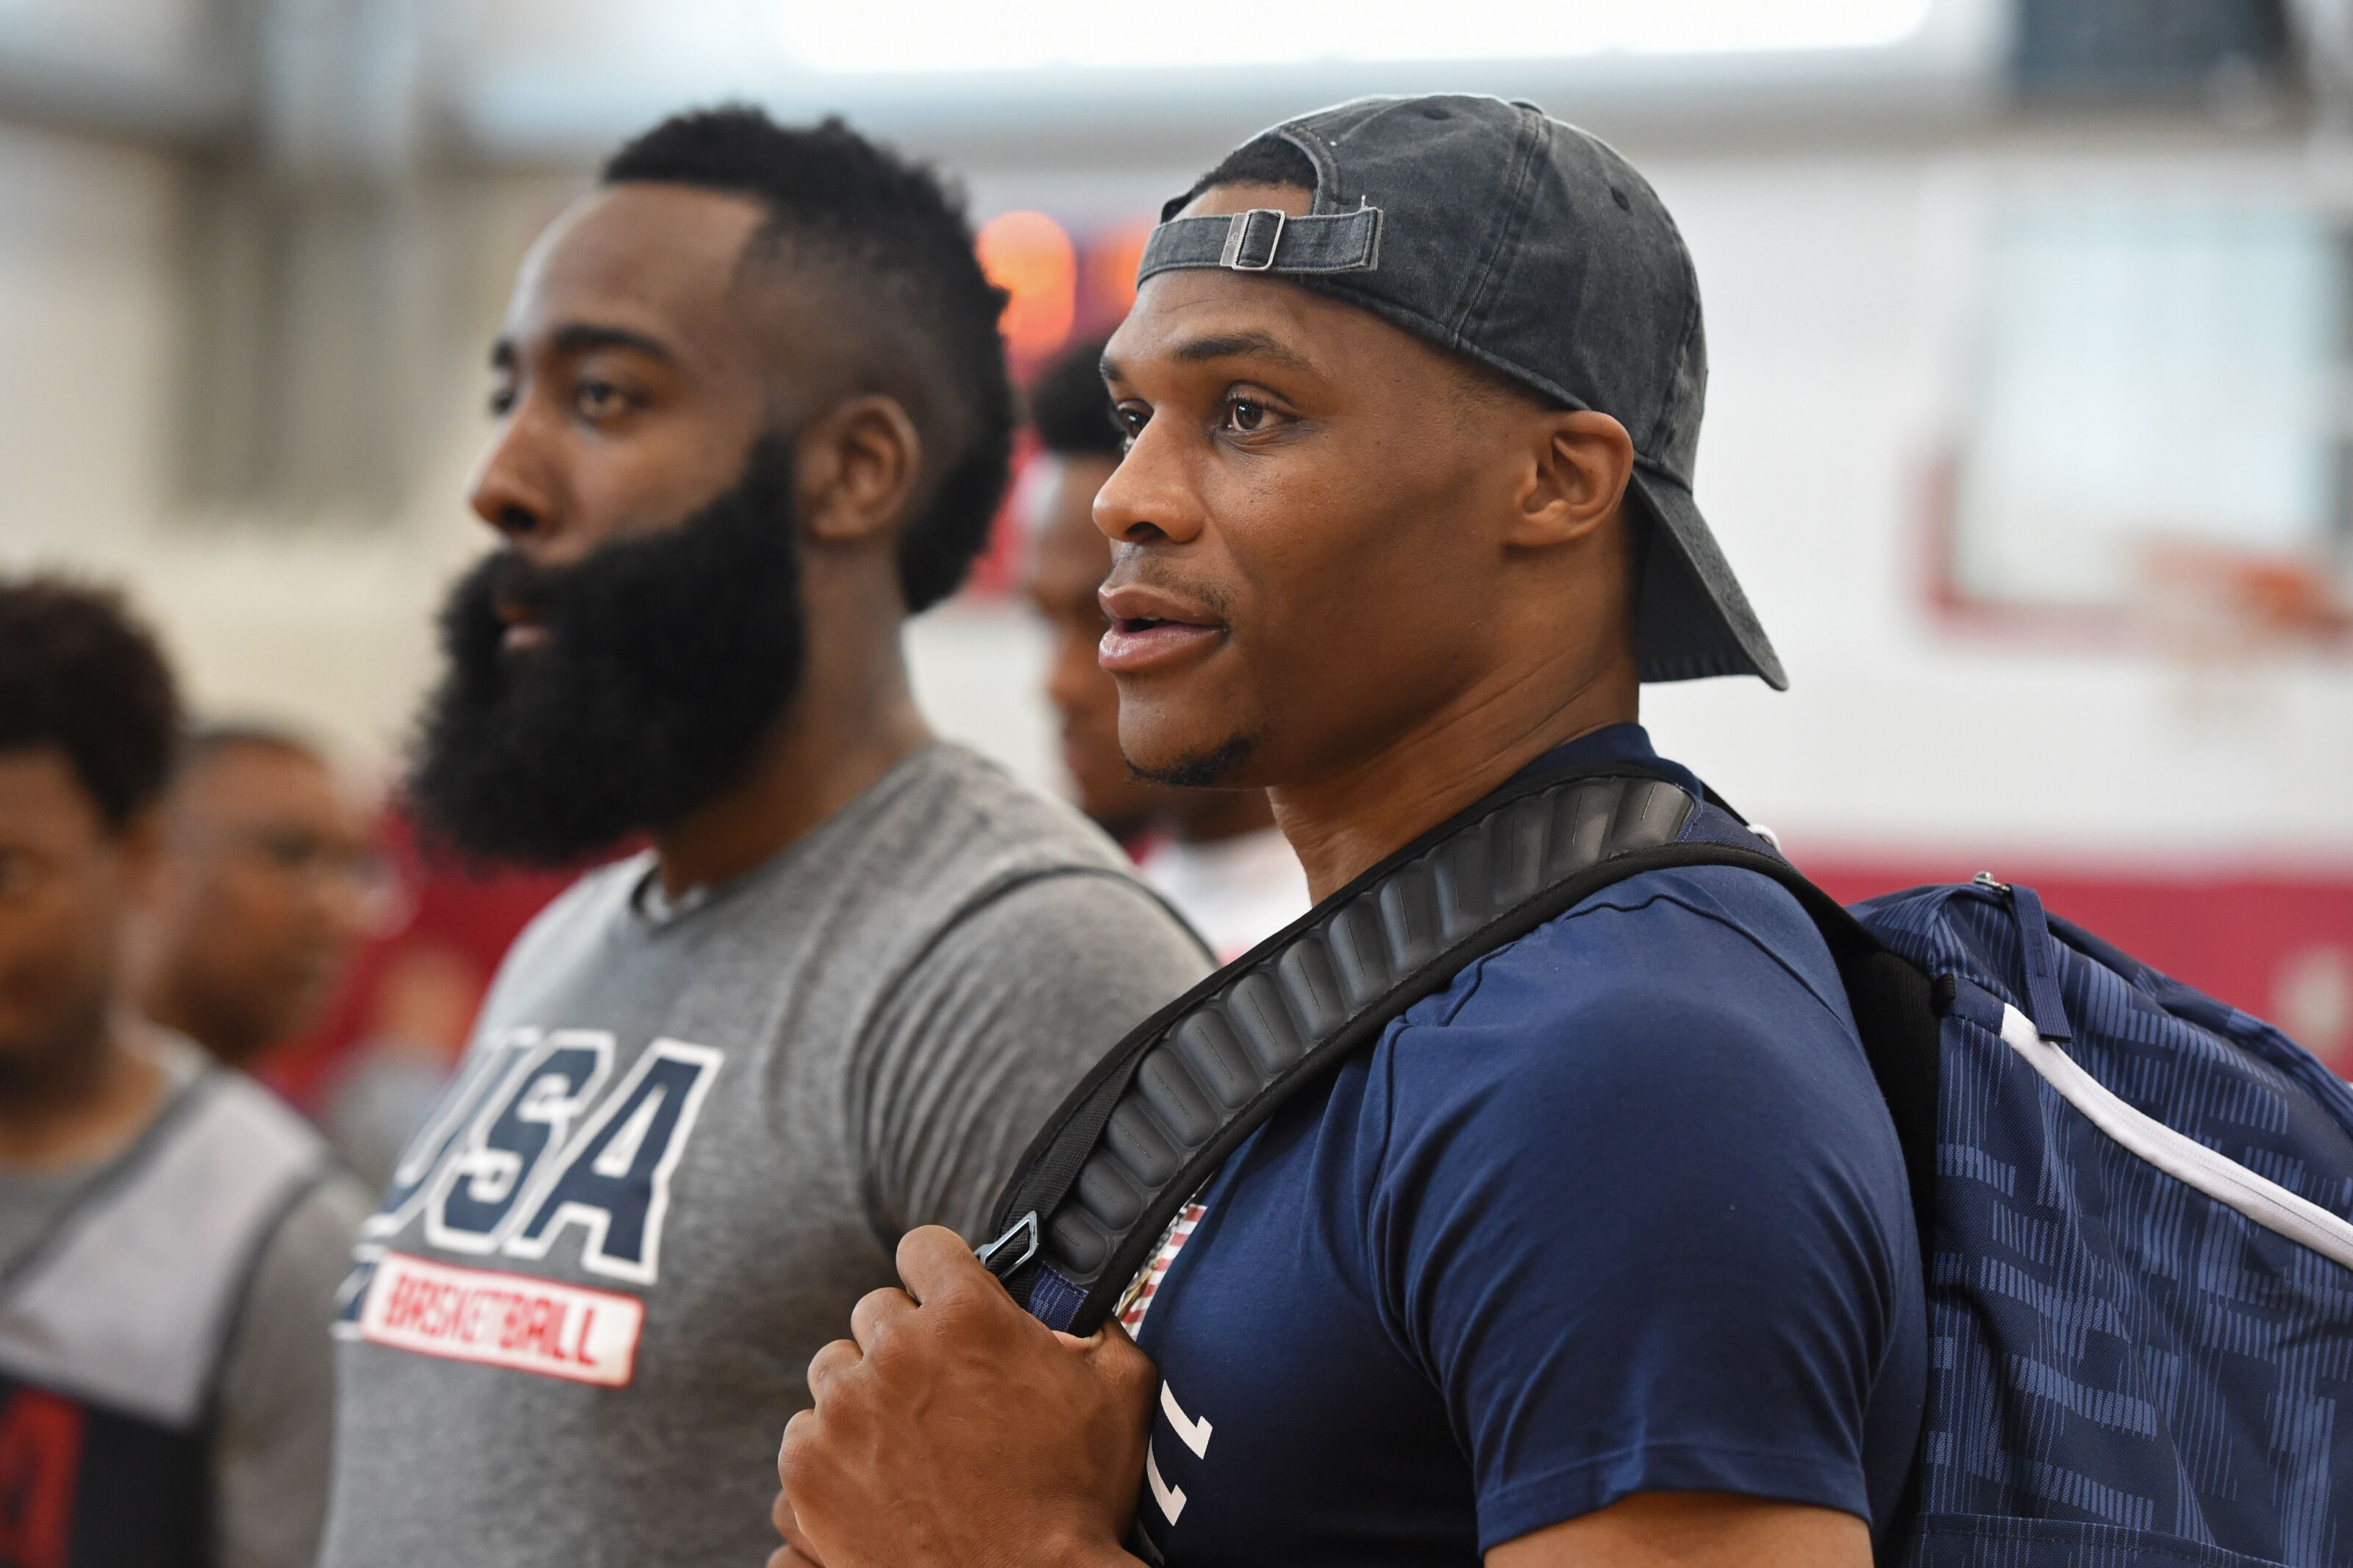 OKC Thunder star Russell Westbrook nabs NBA 2K19 rating of 93